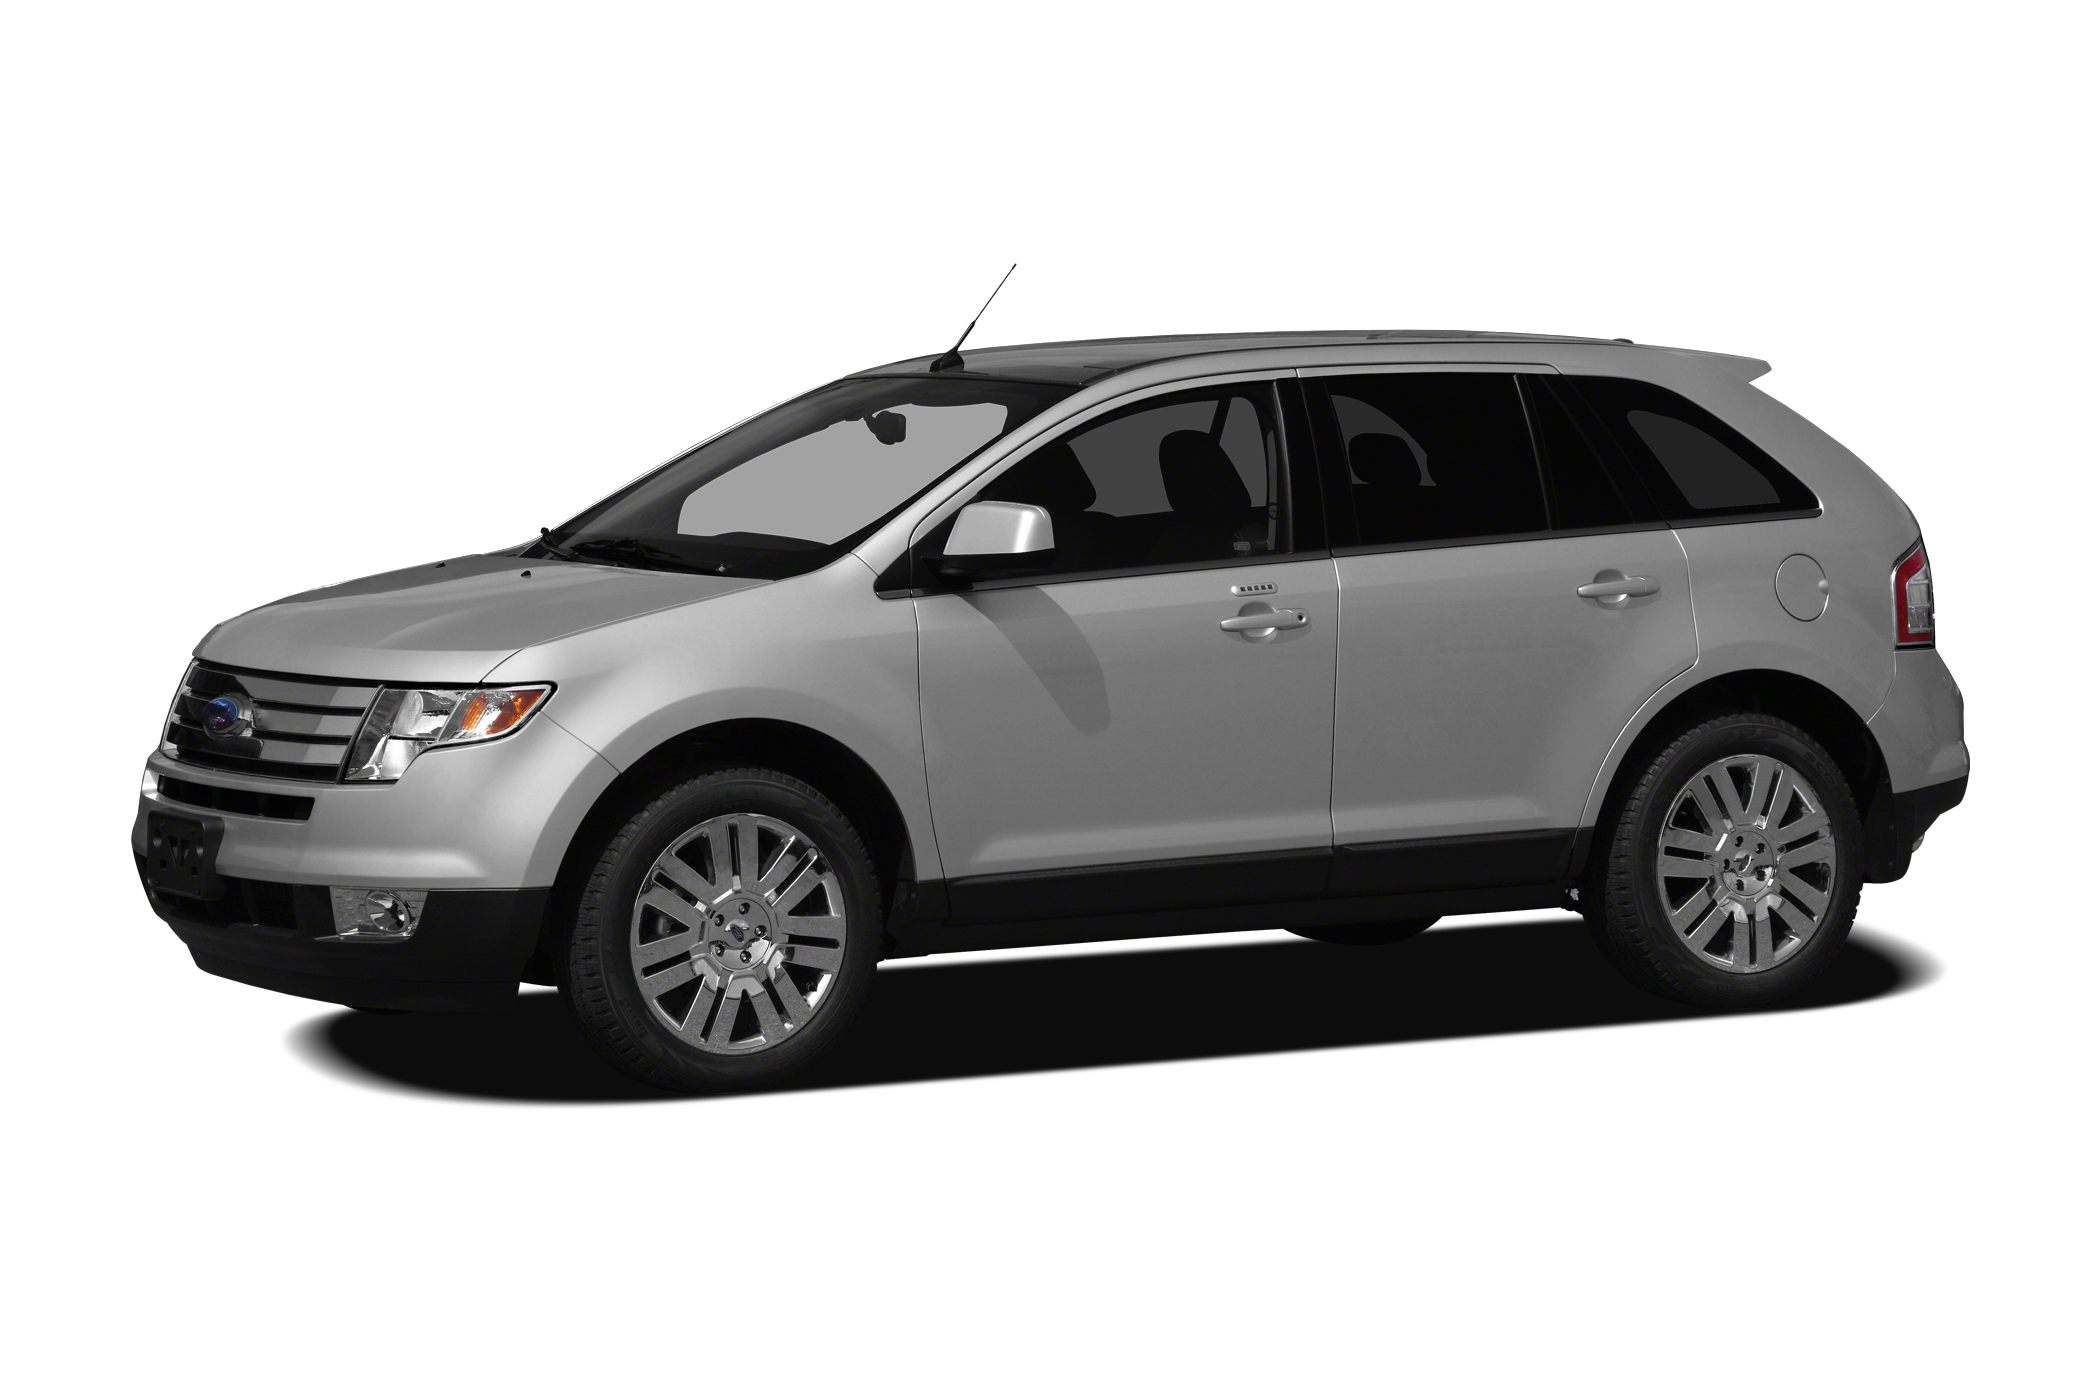 2010 Ford Edge Limited DISCOVERY AUTO CENTER IS PROUD TO OFFER THIS LOADED 2010 FORD EDGE LIMITED